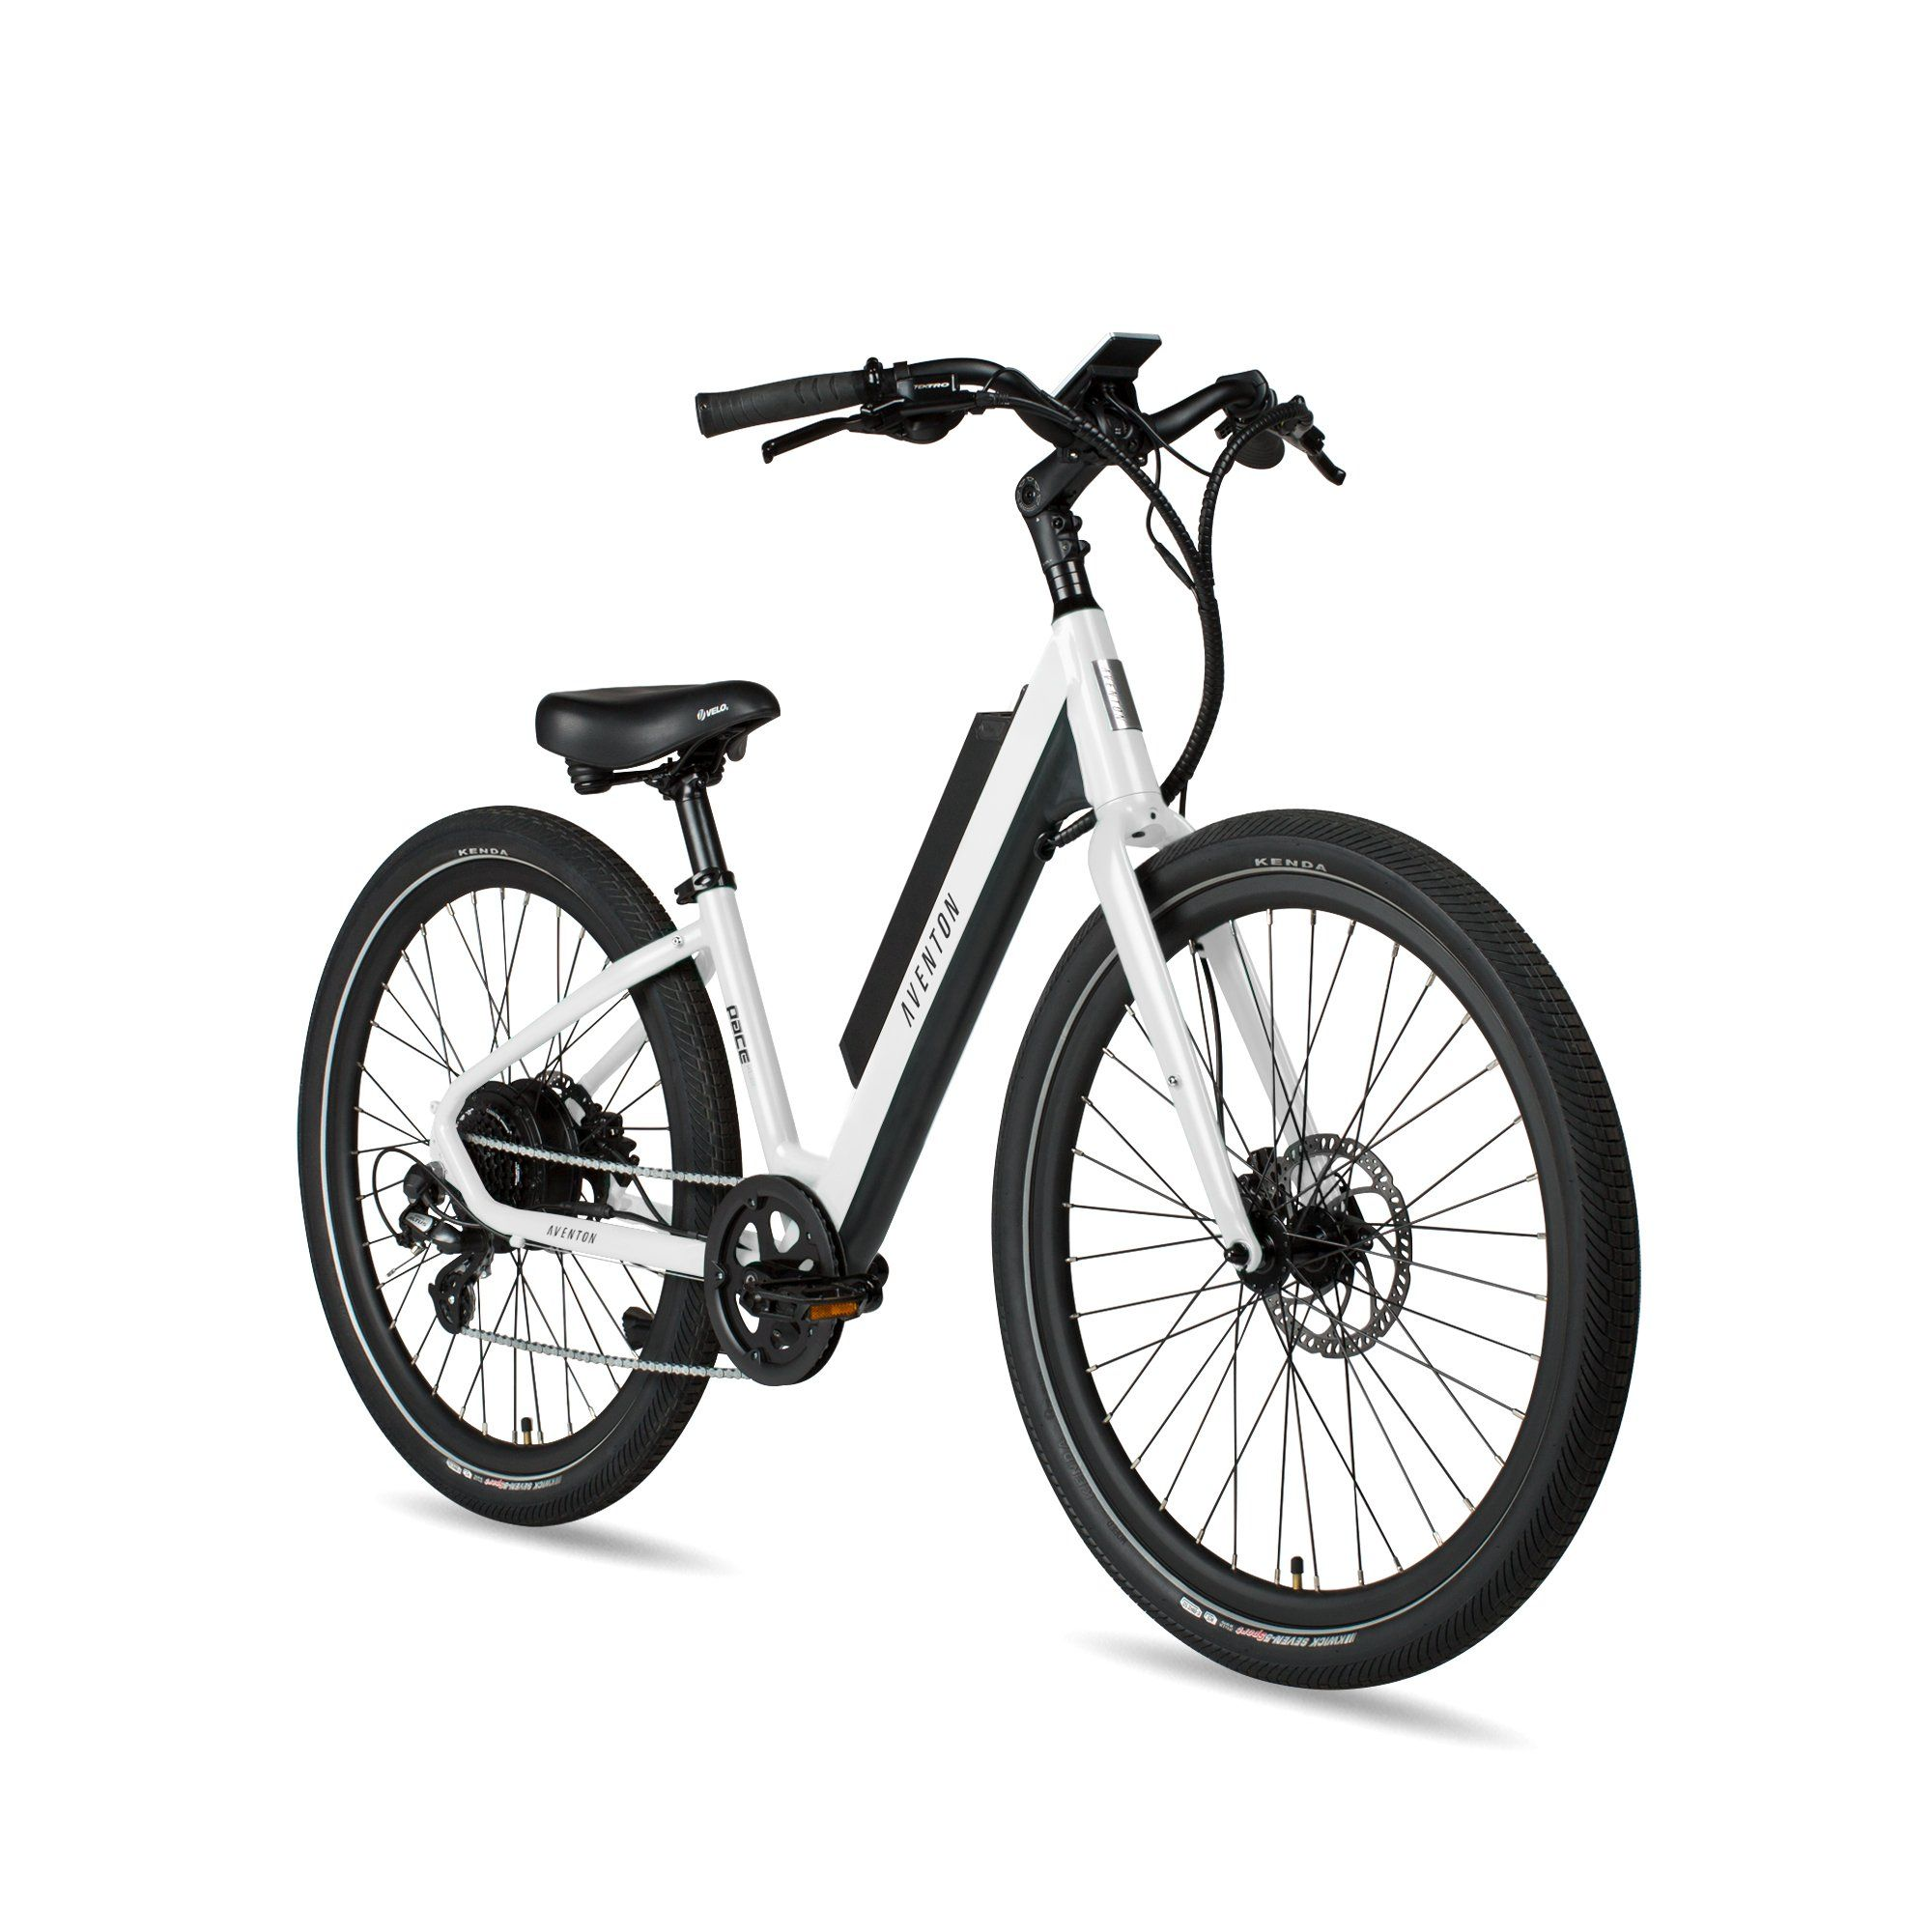 Pace 500 Step Through Ebike Bike Bicycle Rims Bicycle